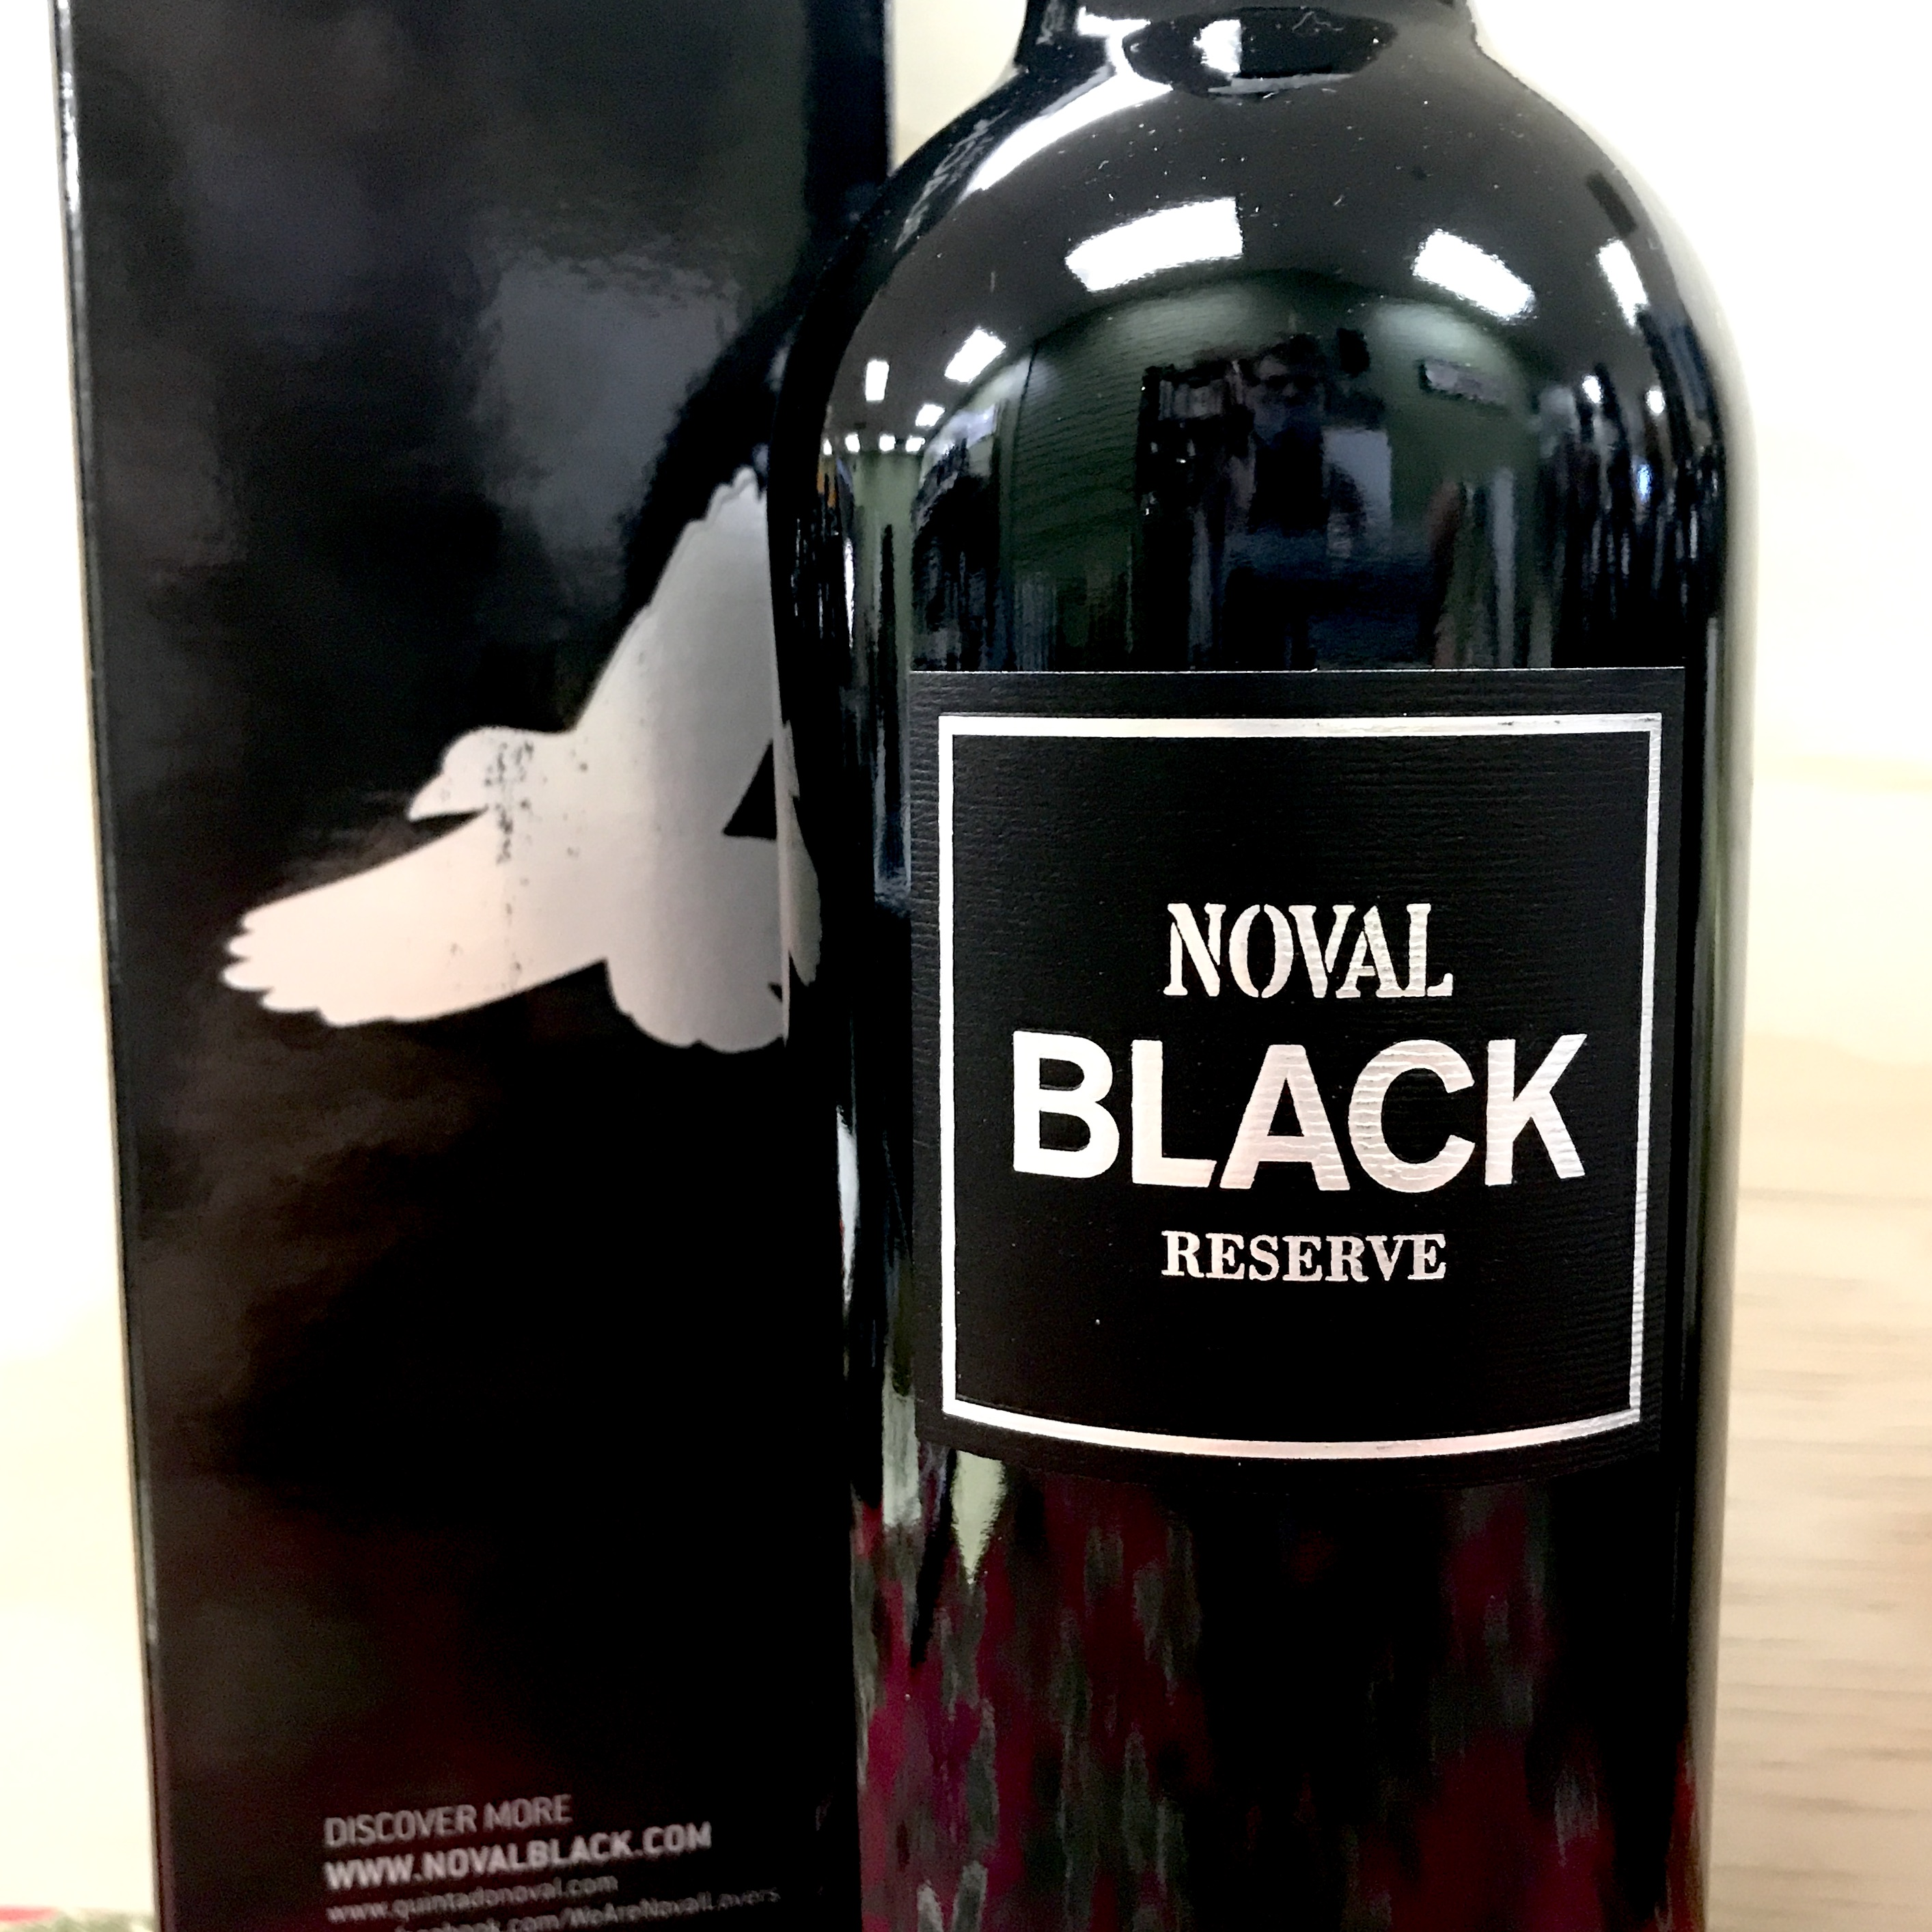 Noval Black Port NV